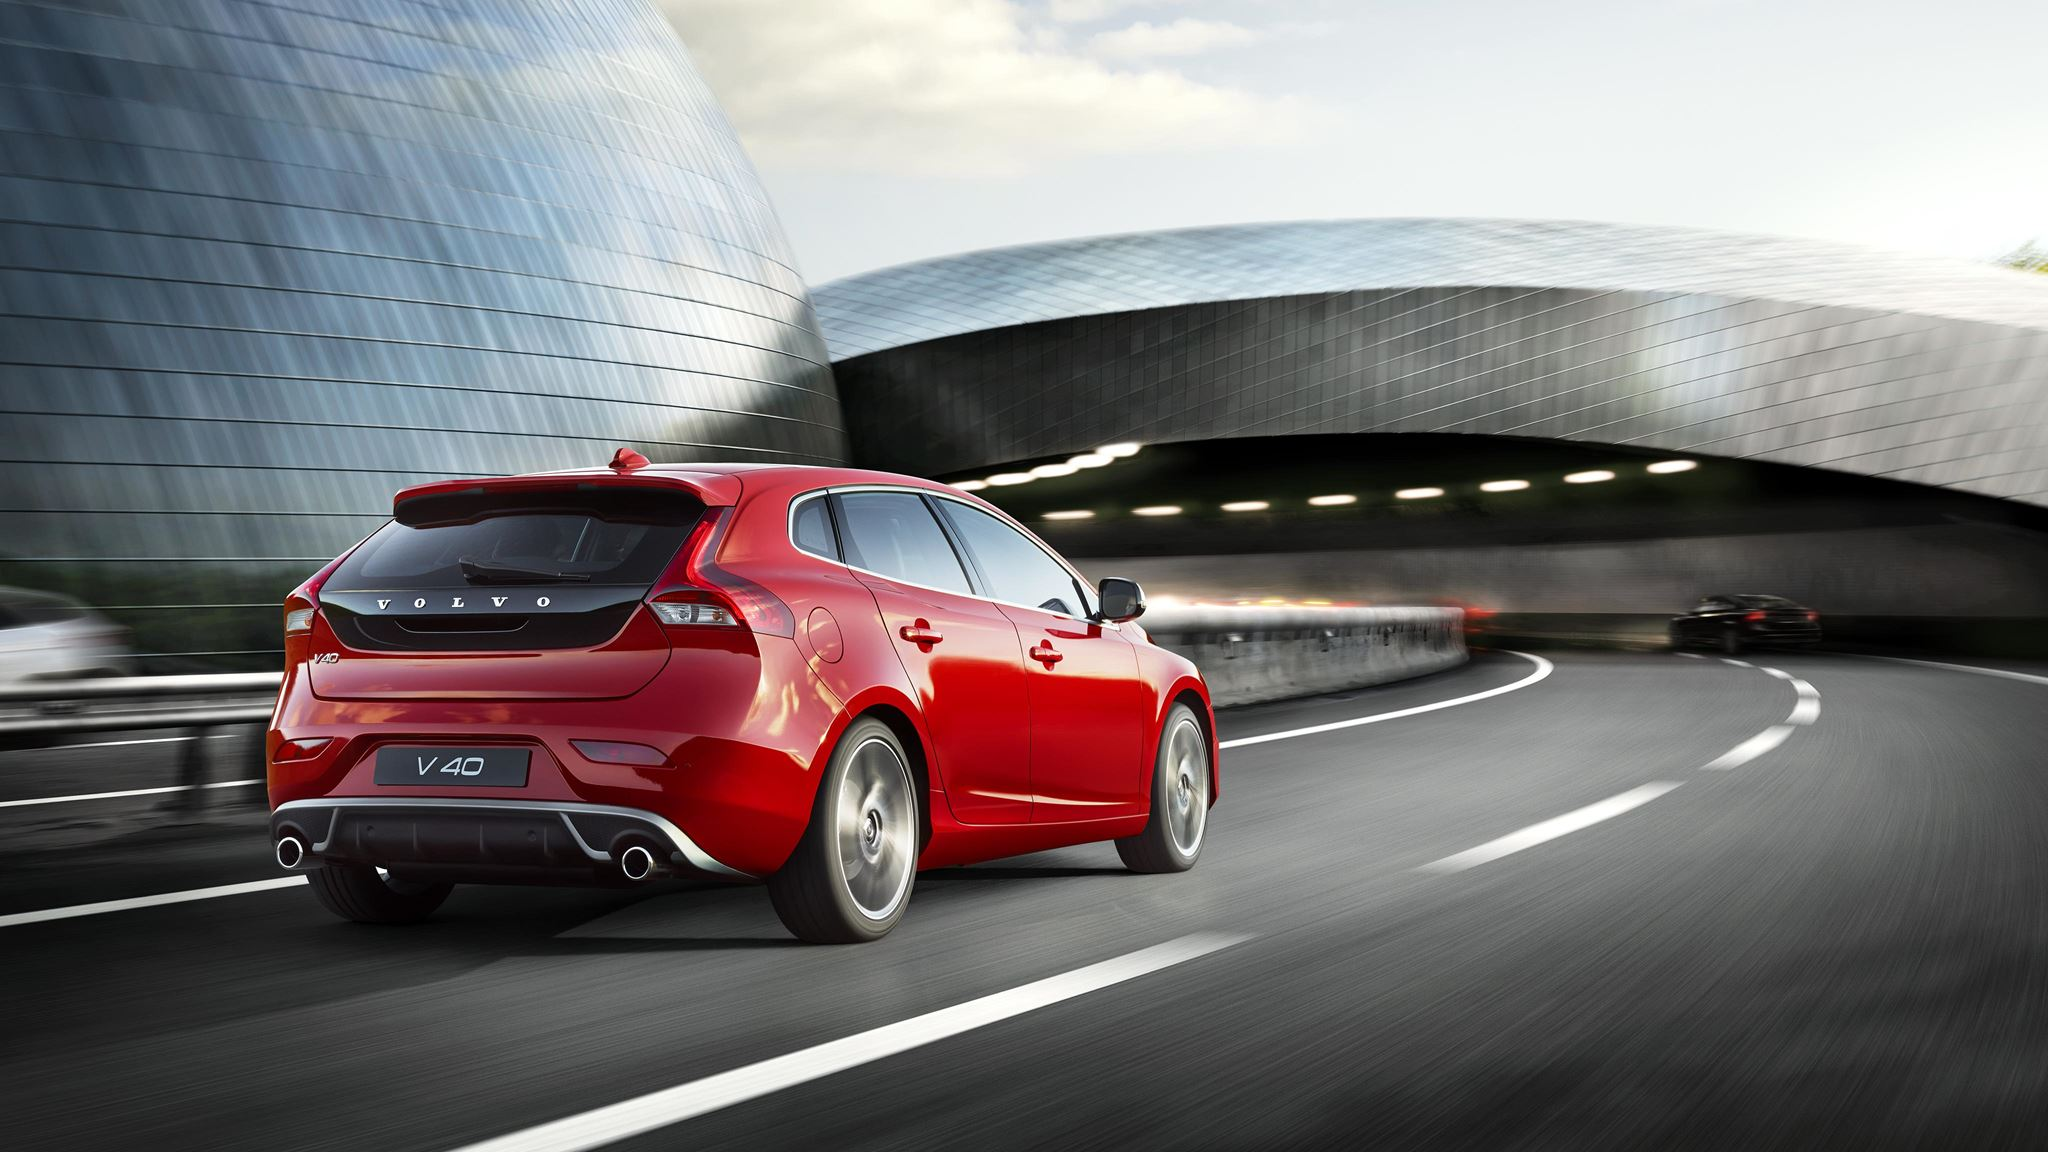 volvo v40 hatchback launch report prices specification trims autopromag. Black Bedroom Furniture Sets. Home Design Ideas